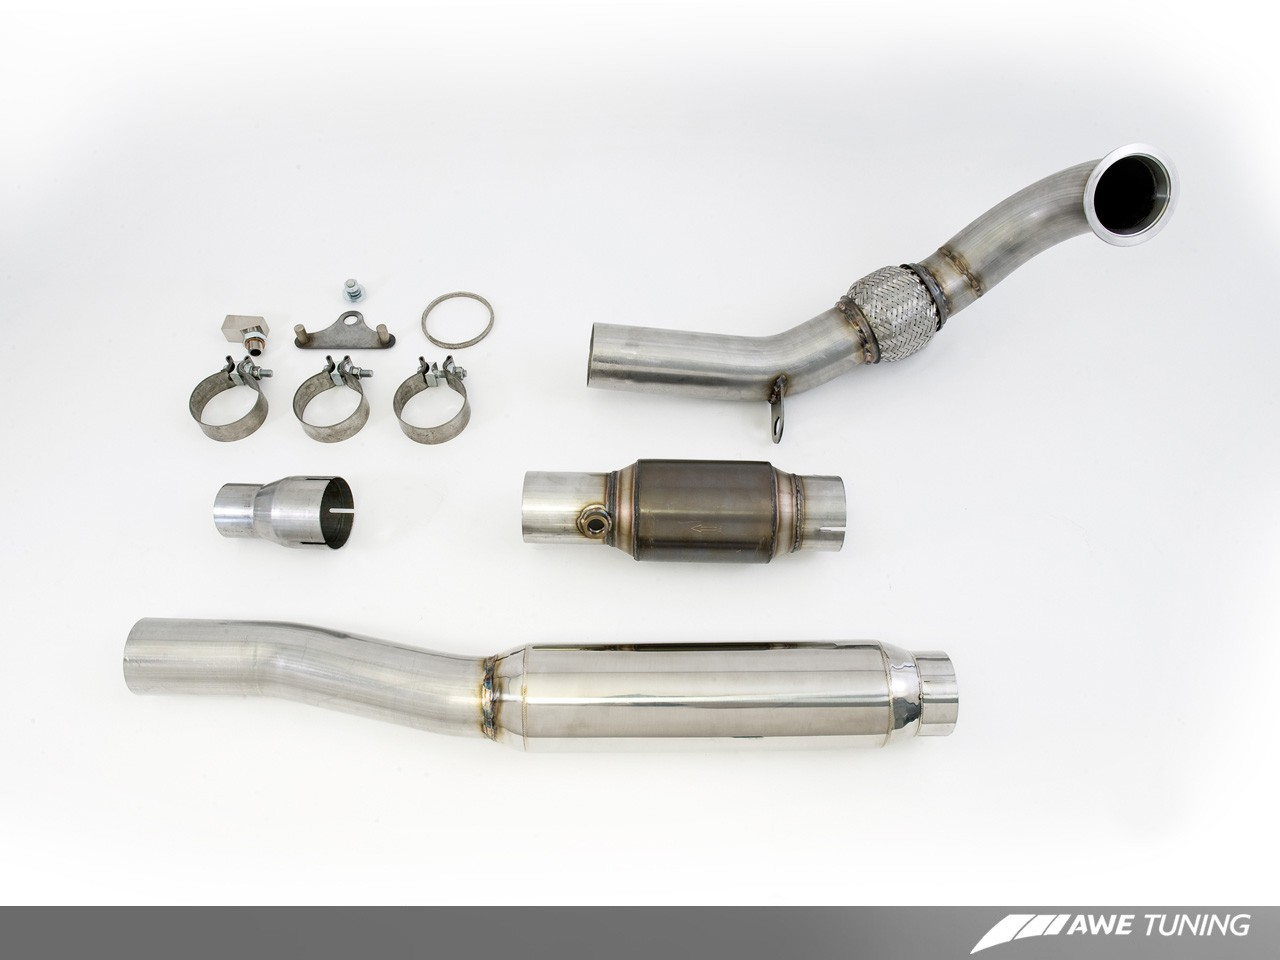 AWE Tuning 2.0T Jetta GLI Performance Downpipe